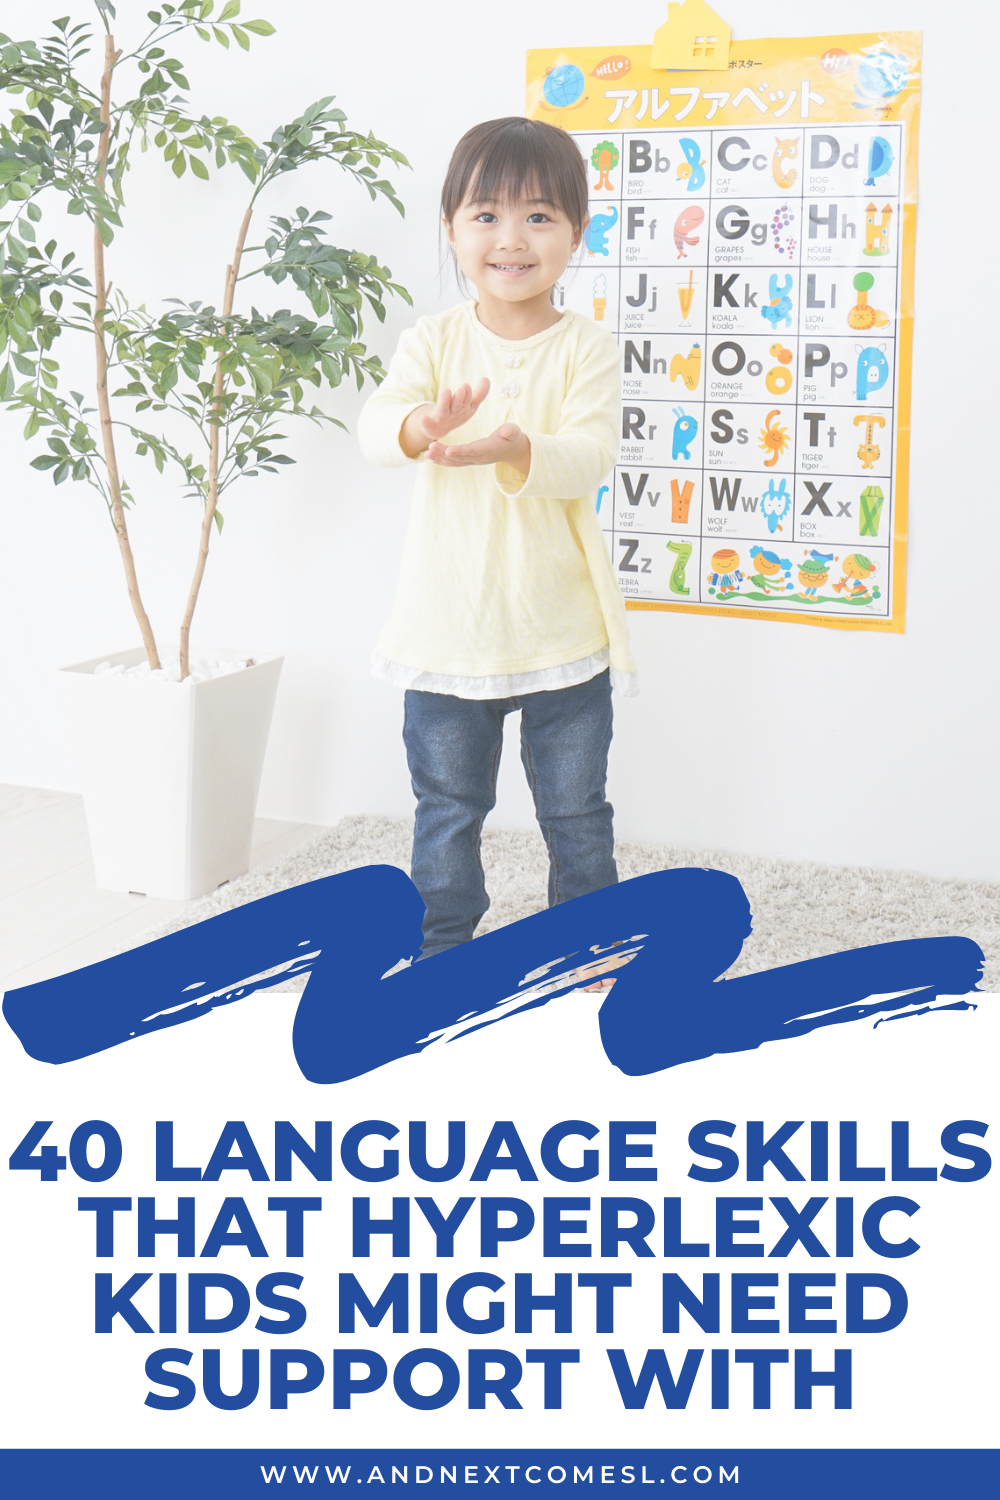 40 language skills that hyperlexic kids might need some extra support with. These skills can be taught through speech therapy, with appropriate accommodations at school, through explicit teaching, or with extra practice at home.